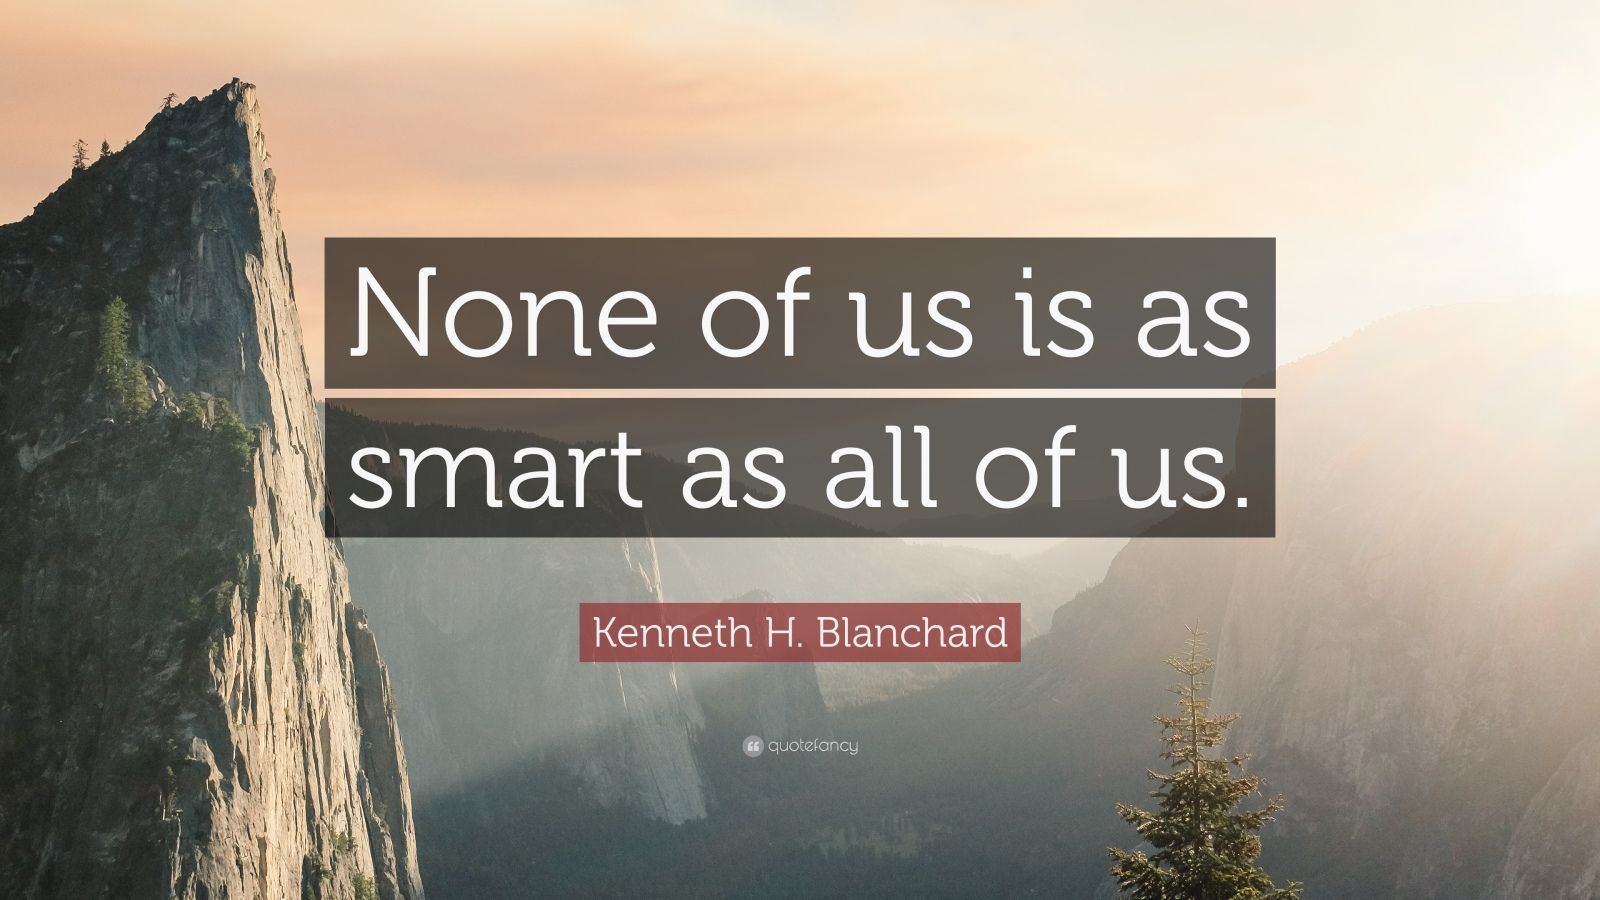 Motivational Life Quotes Wallpapers Kenneth H Blanchard Quote None Of Us Is As Smart As All